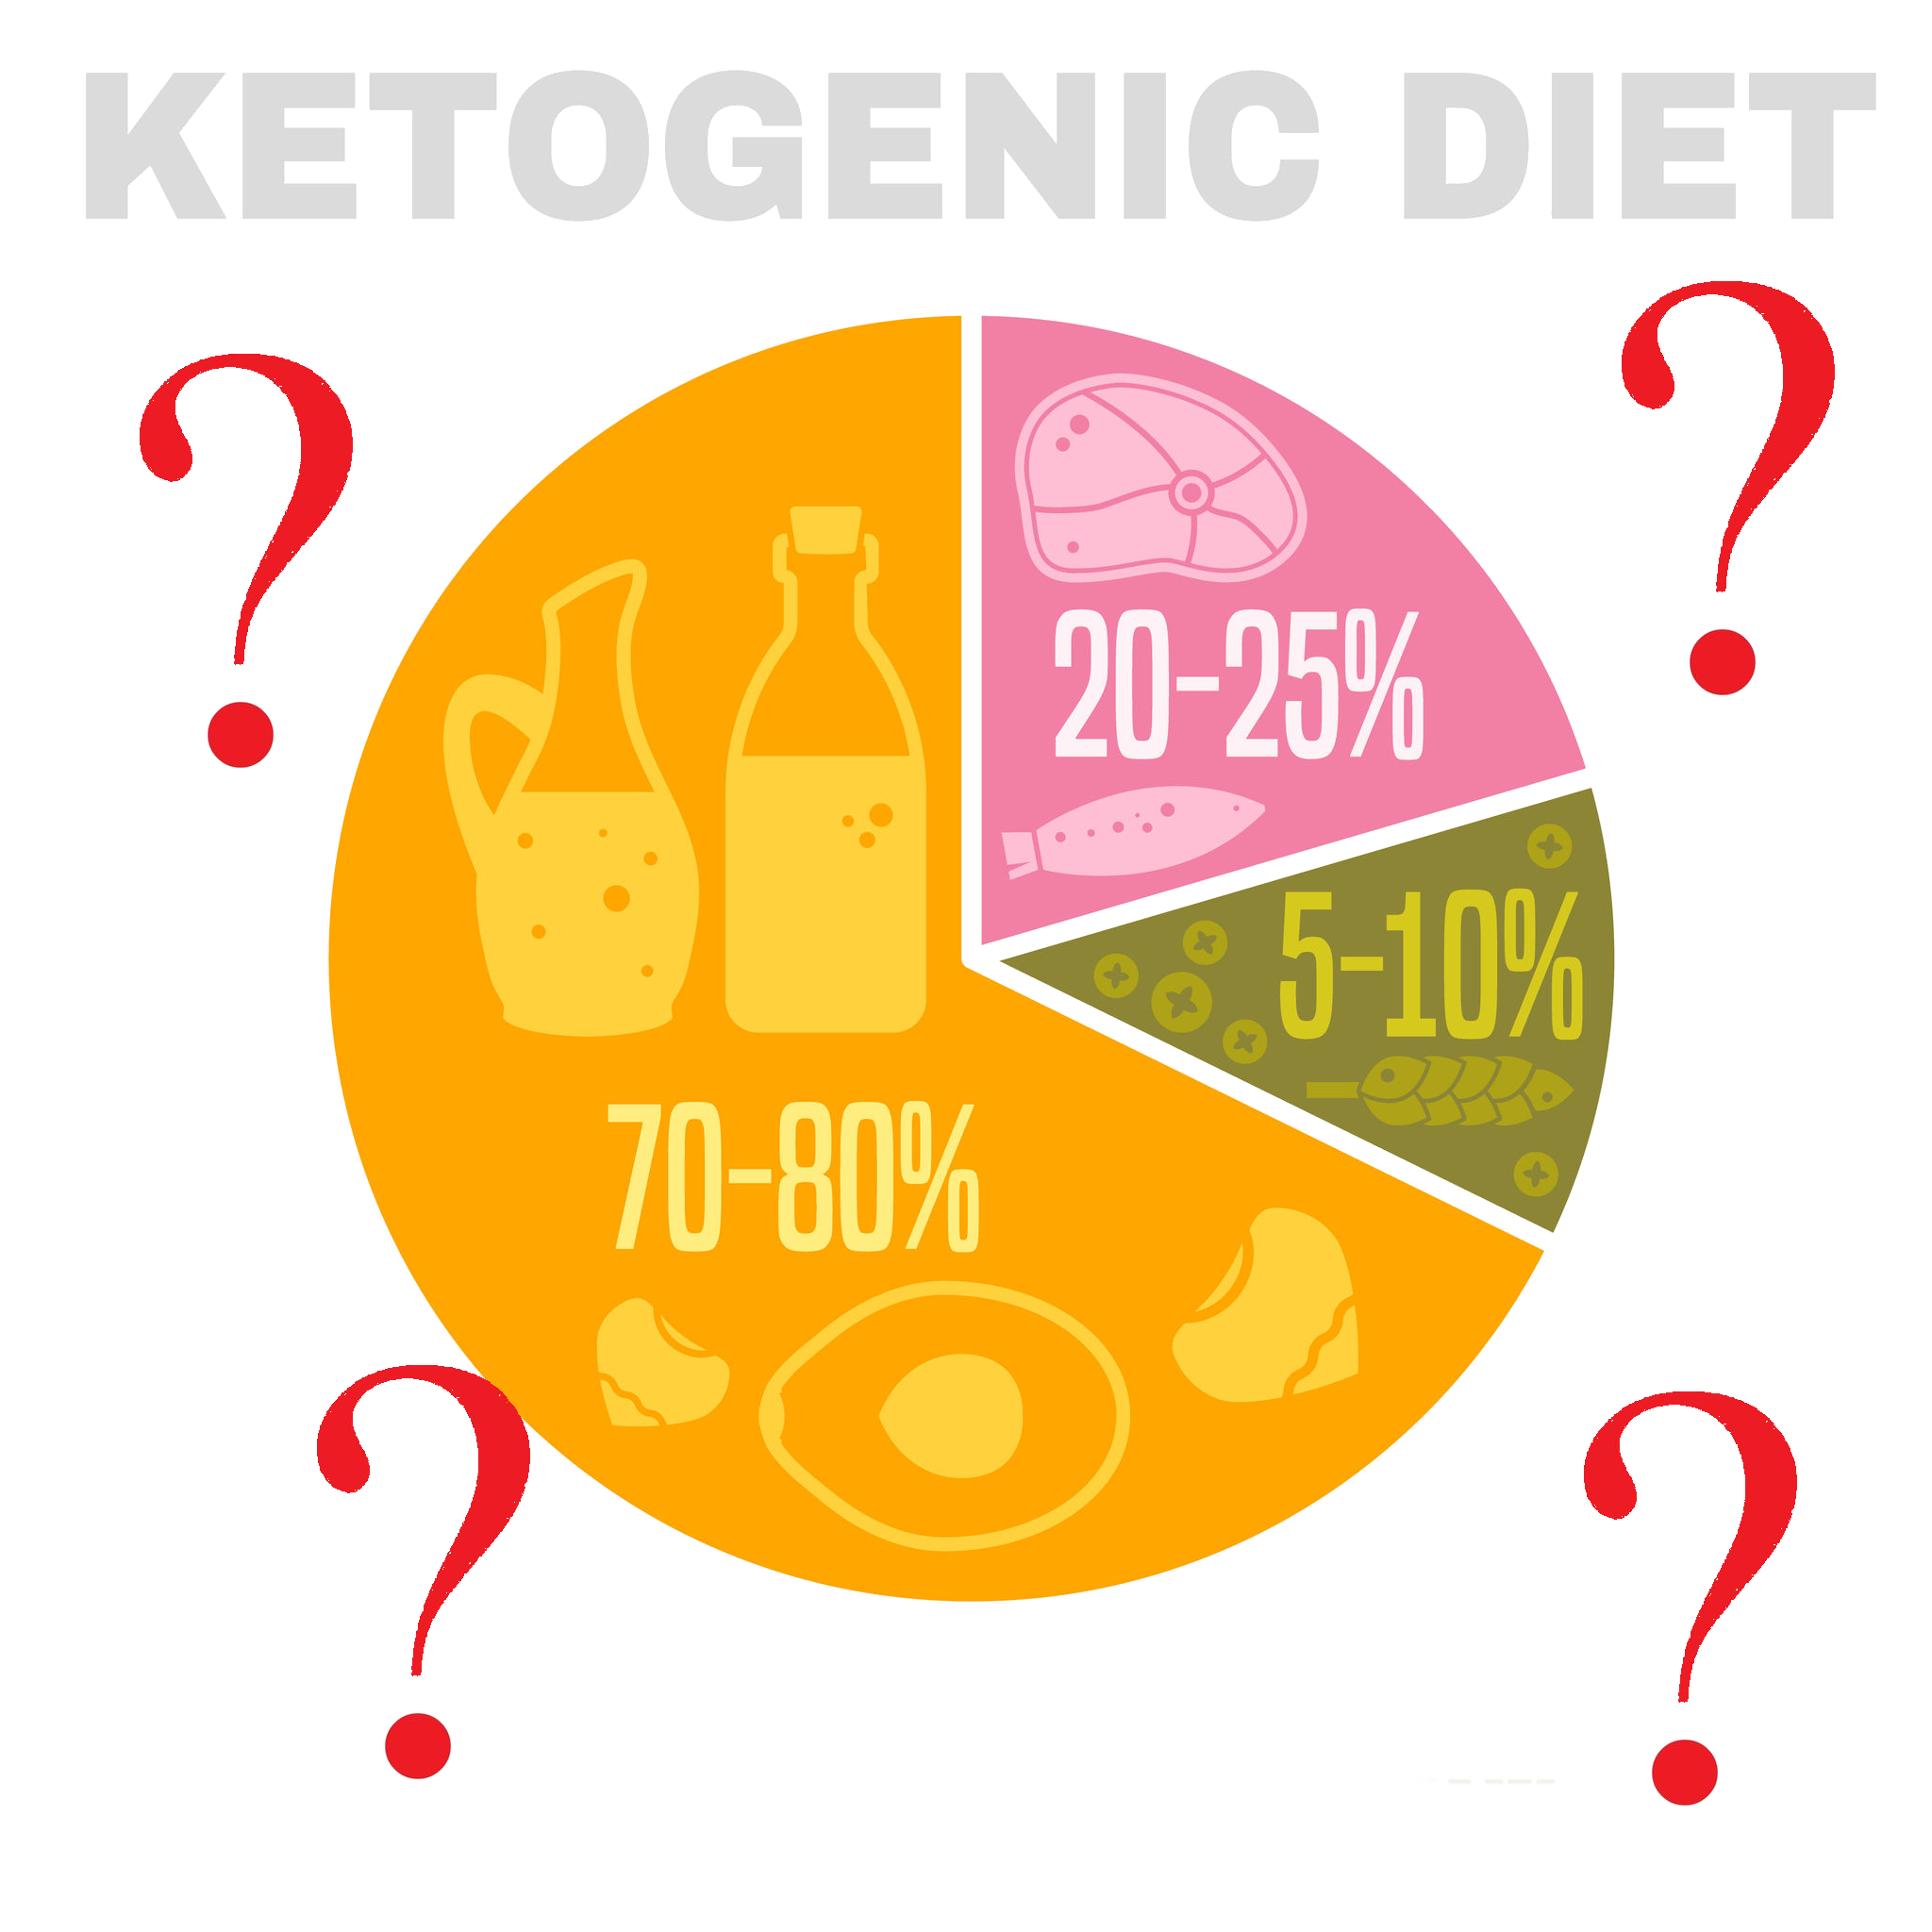 Myths of Keto